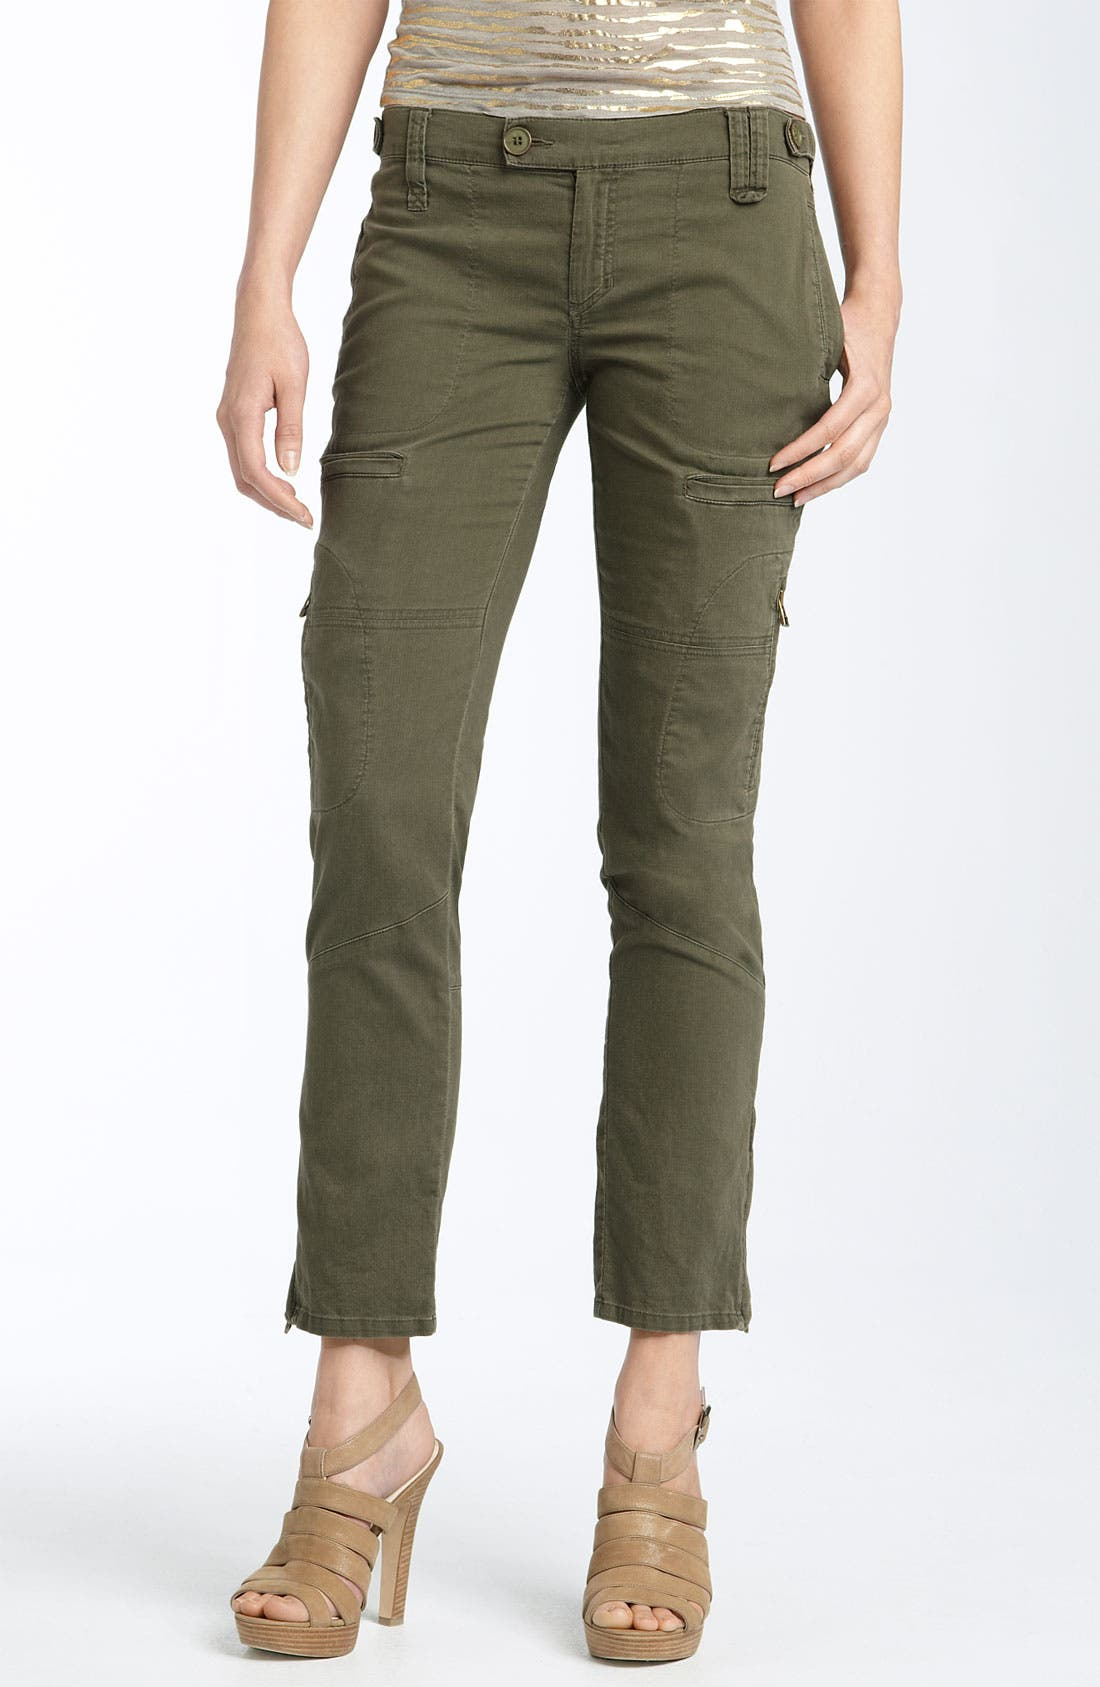 Enjoy free shipping and easy returns every day at Kohl's. Find great deals on Juniors Skinny Jeans at Kohl's today!